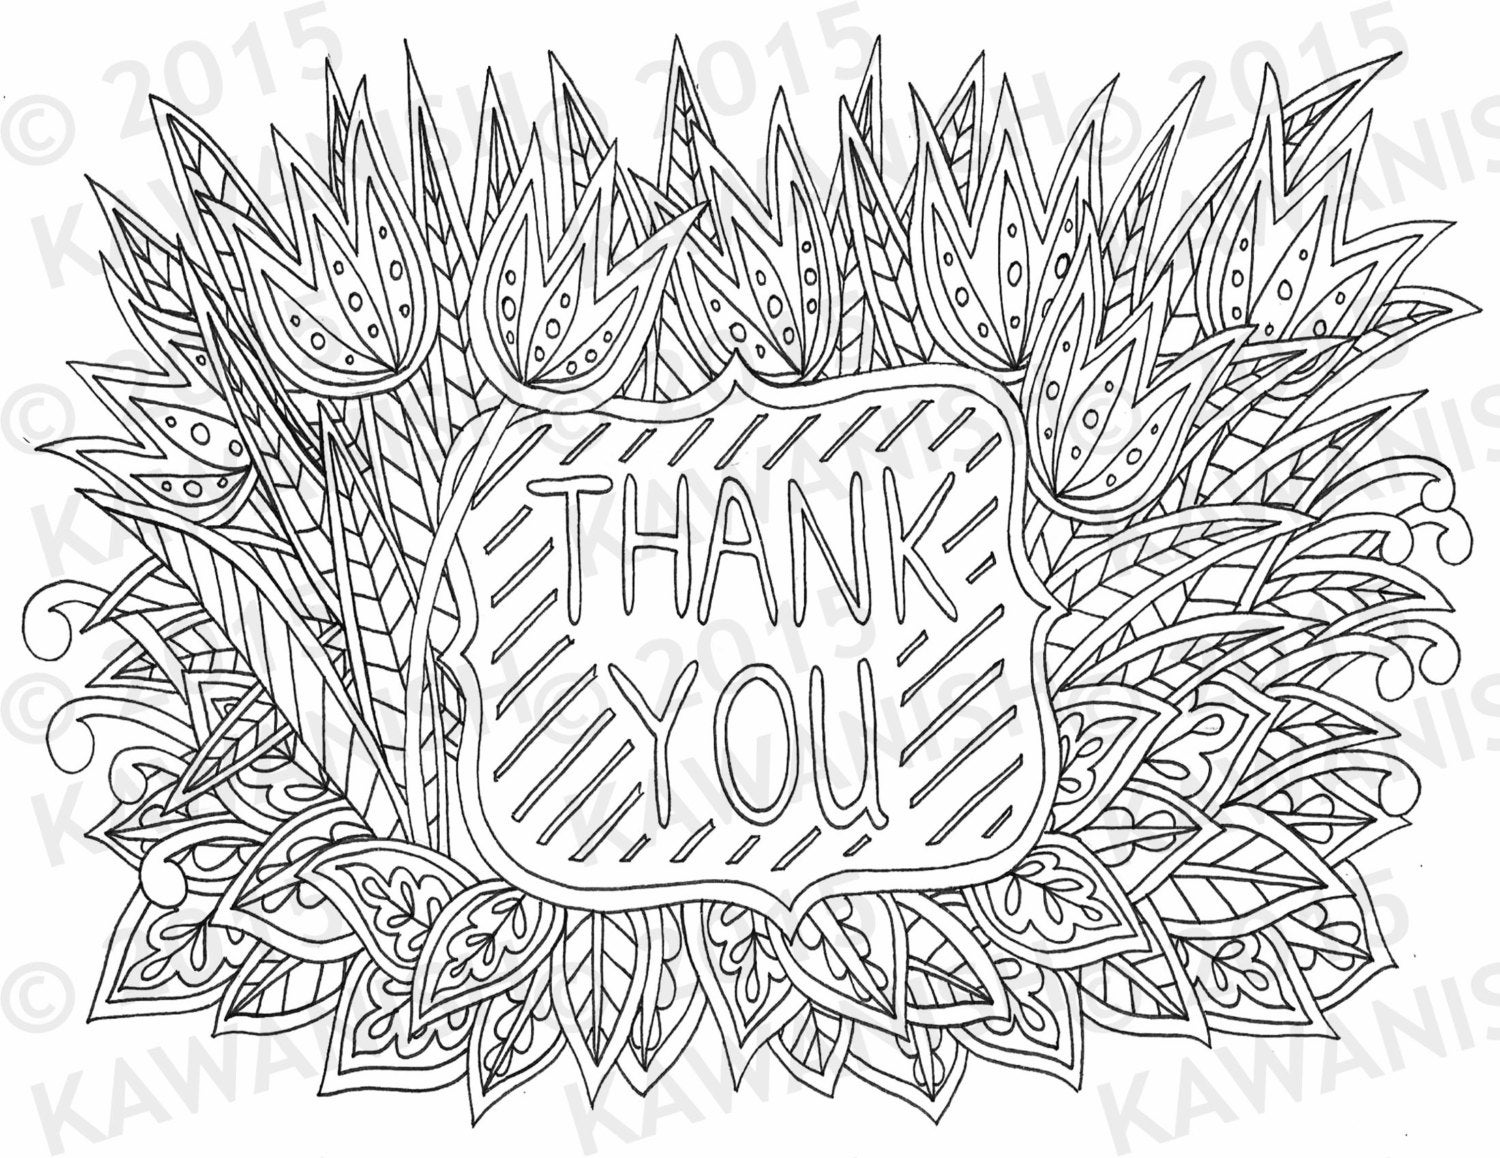 thank you flower coloring pages thank you for your service coloring pages cards with you thank flower pages coloring